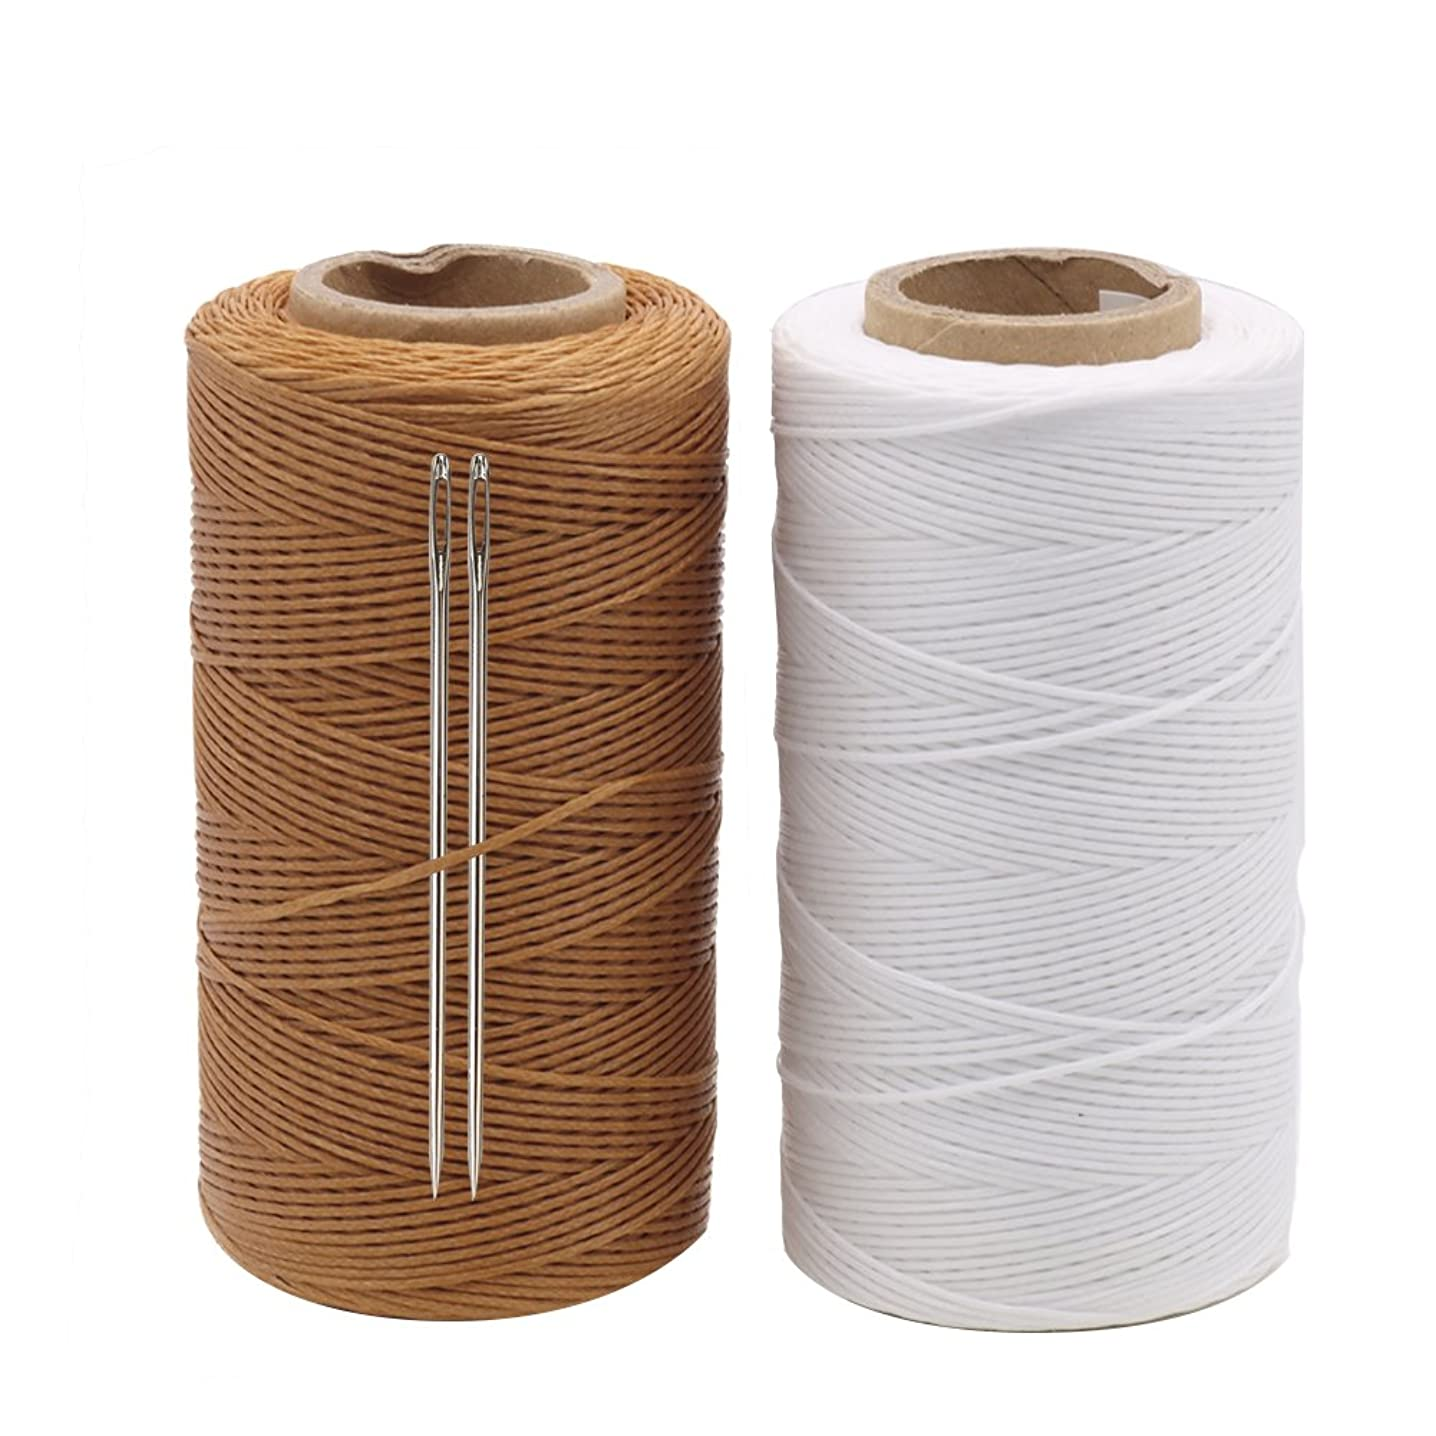 Tenn Well 568 Yards 150D 1MM Leather Sewing Waxed Thread With Needles for Leather Craft Project (2 Rolls x 284Yards)